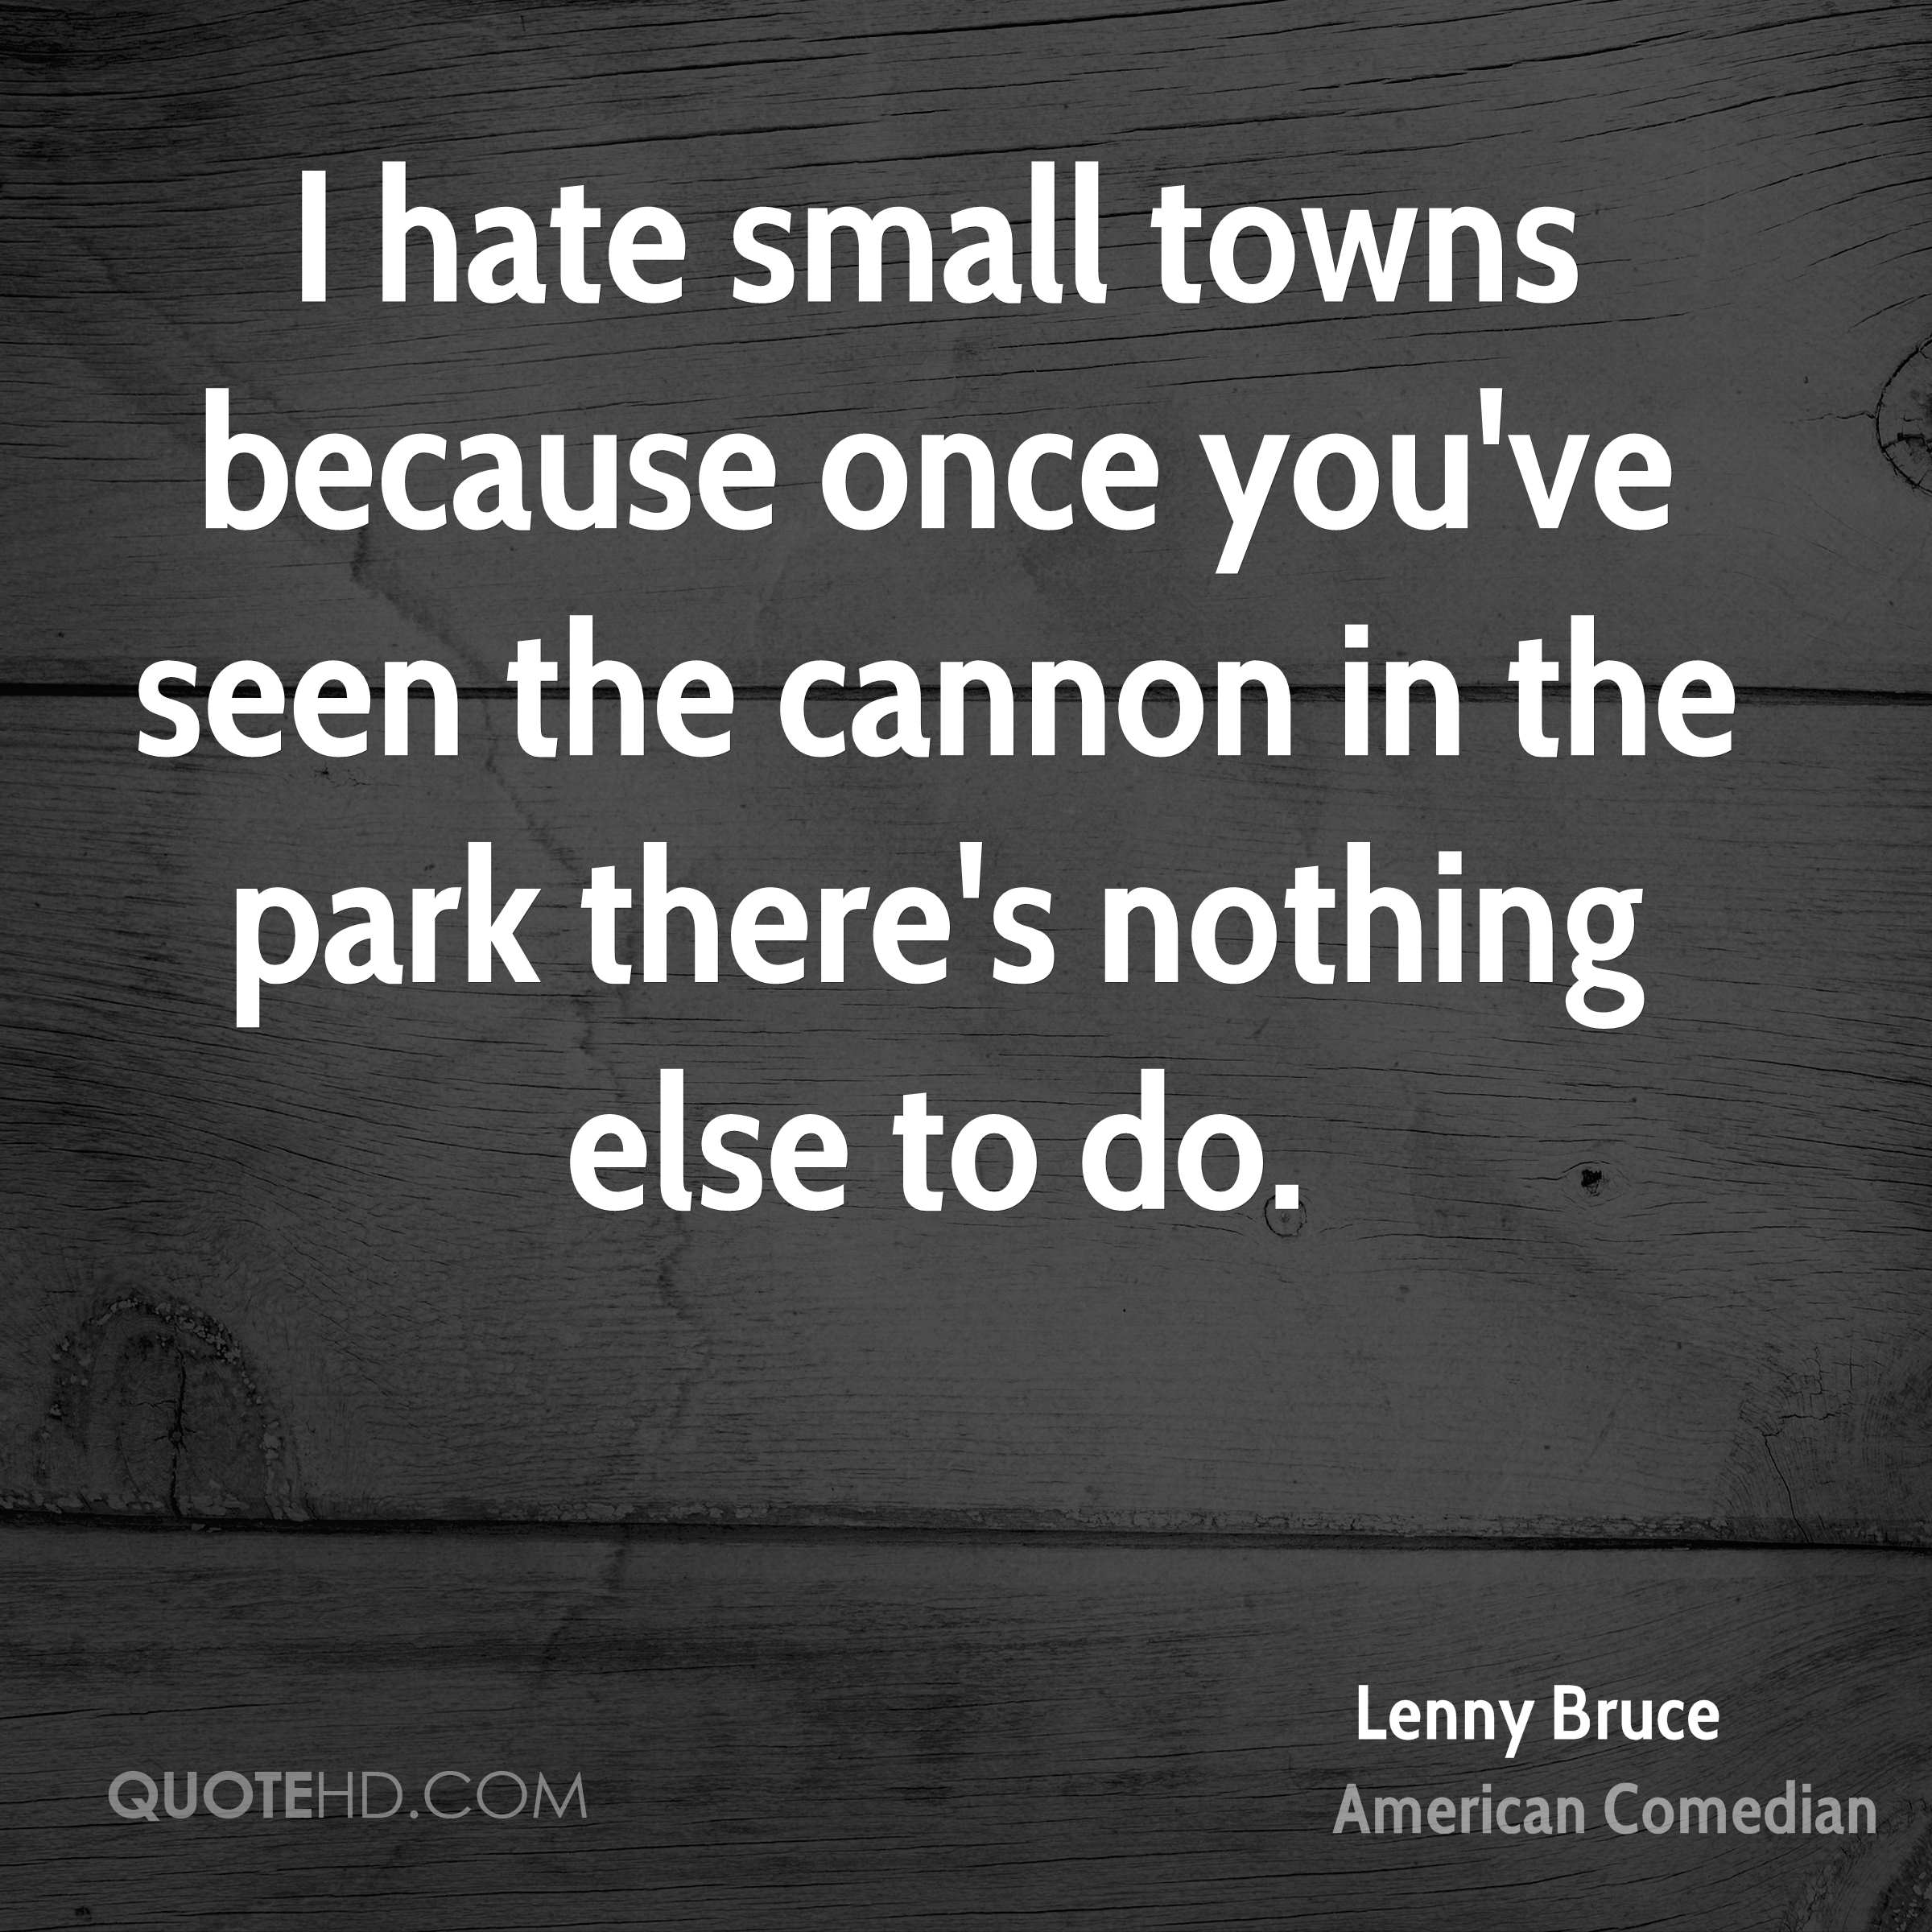 I hate small towns because once you've seen the cannon in the park there's nothing else to do.